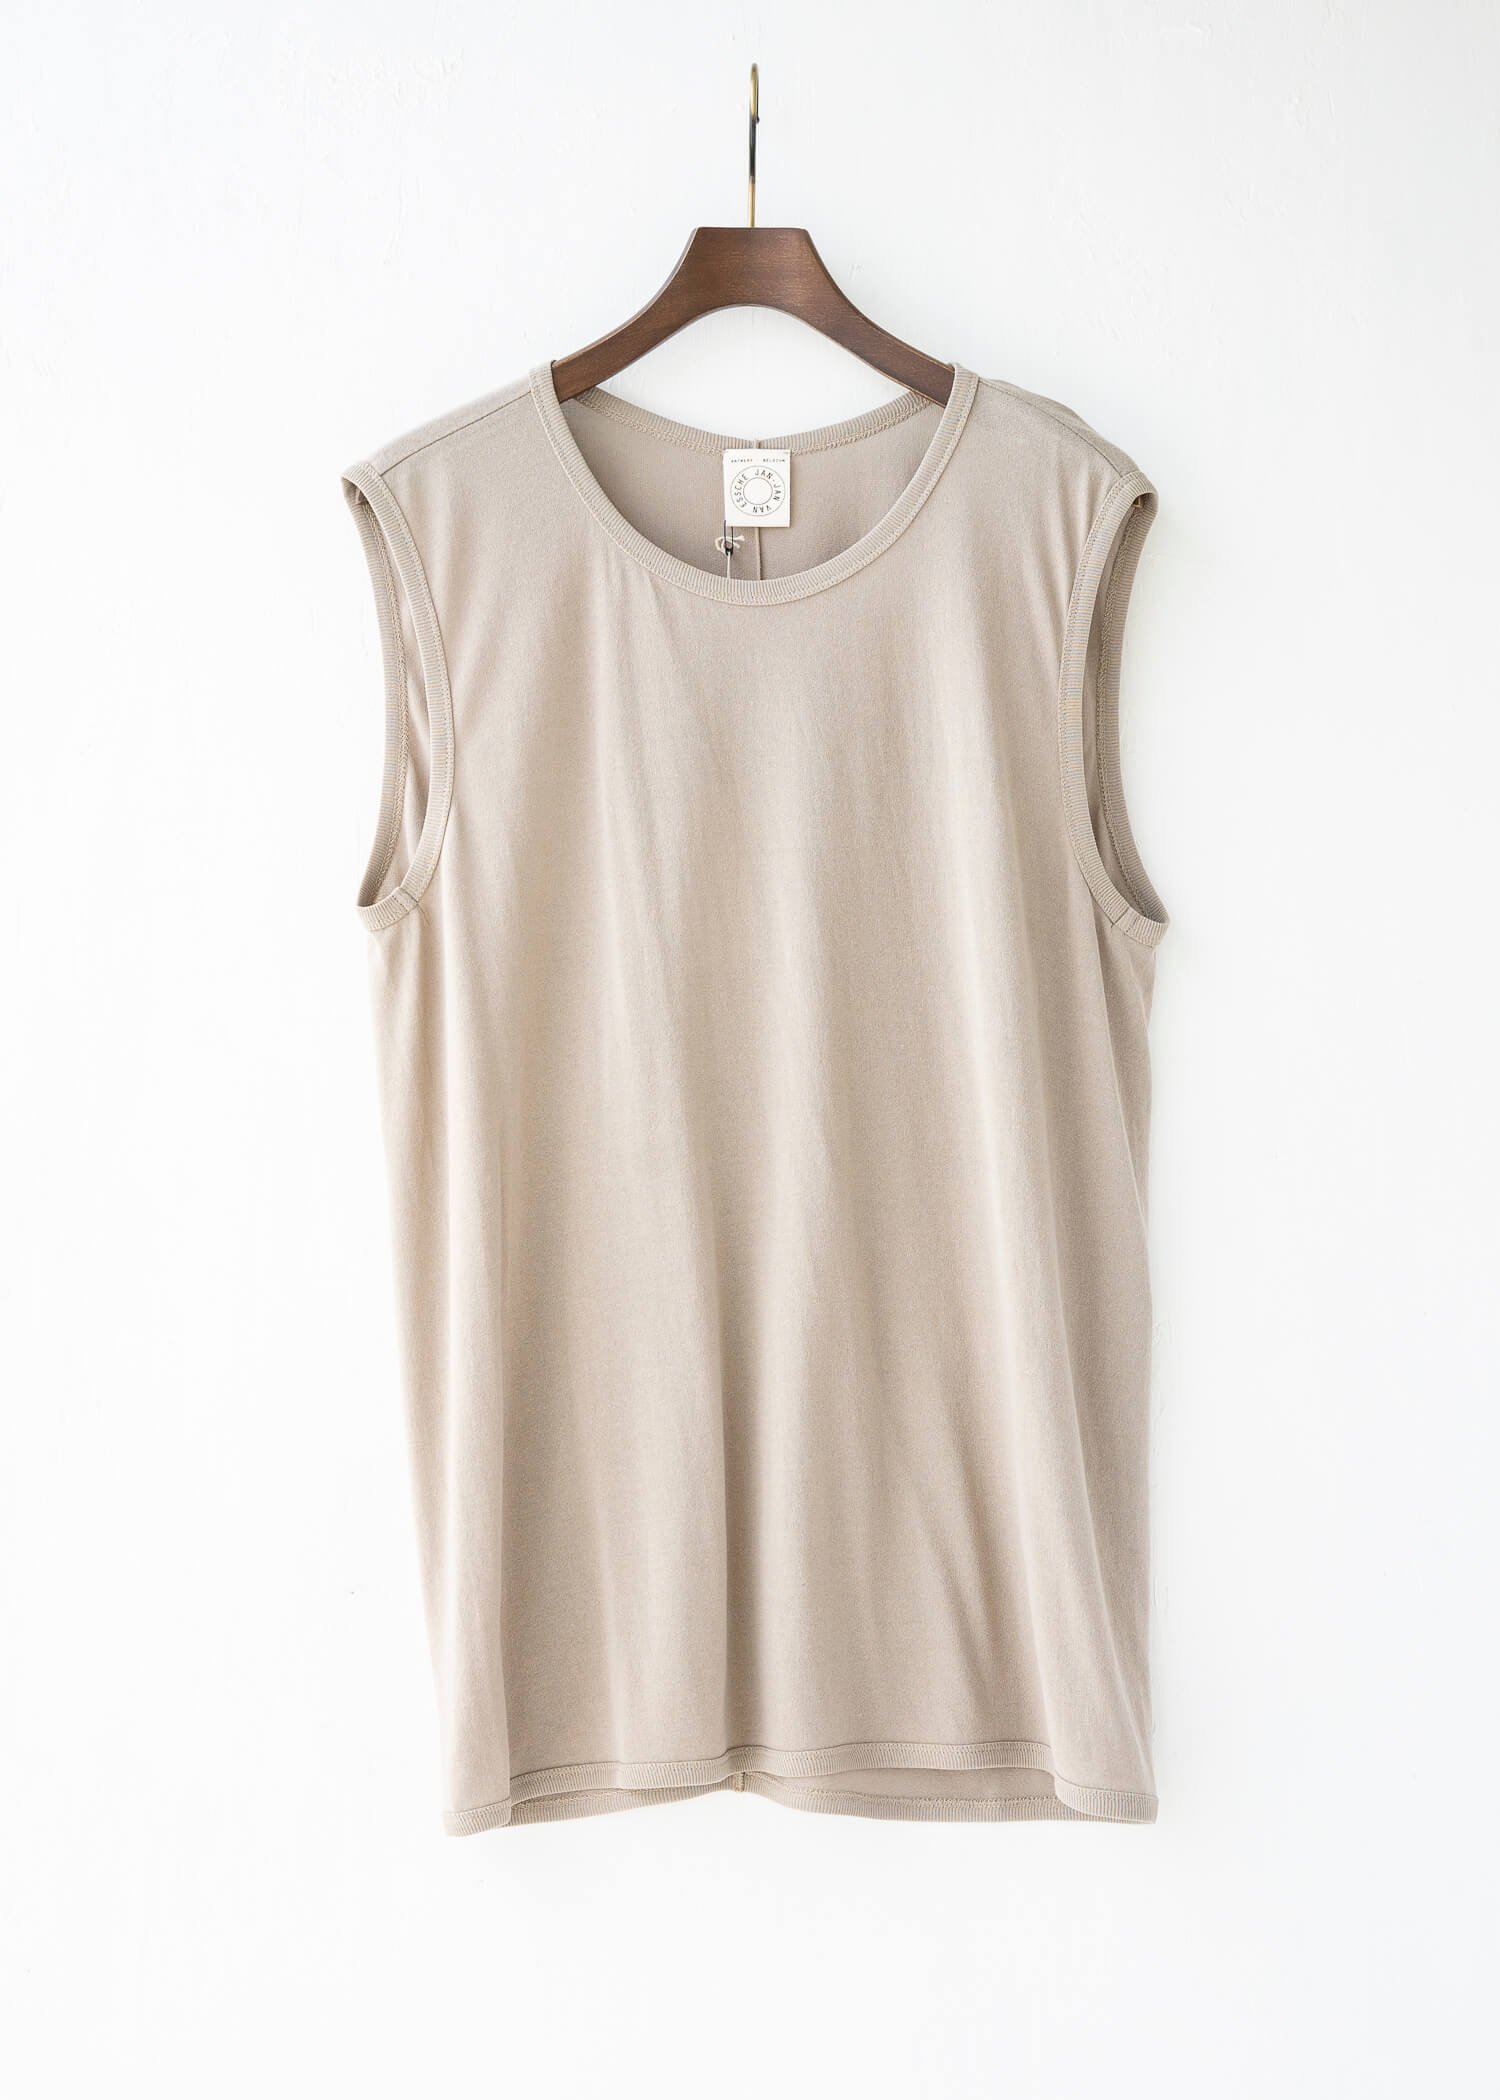 JAN-JAN VAN ESSCHE / TANKTOP#13 REGULAR FIT TANK TOP LIGHT GREY WASHI/CO JERSEY